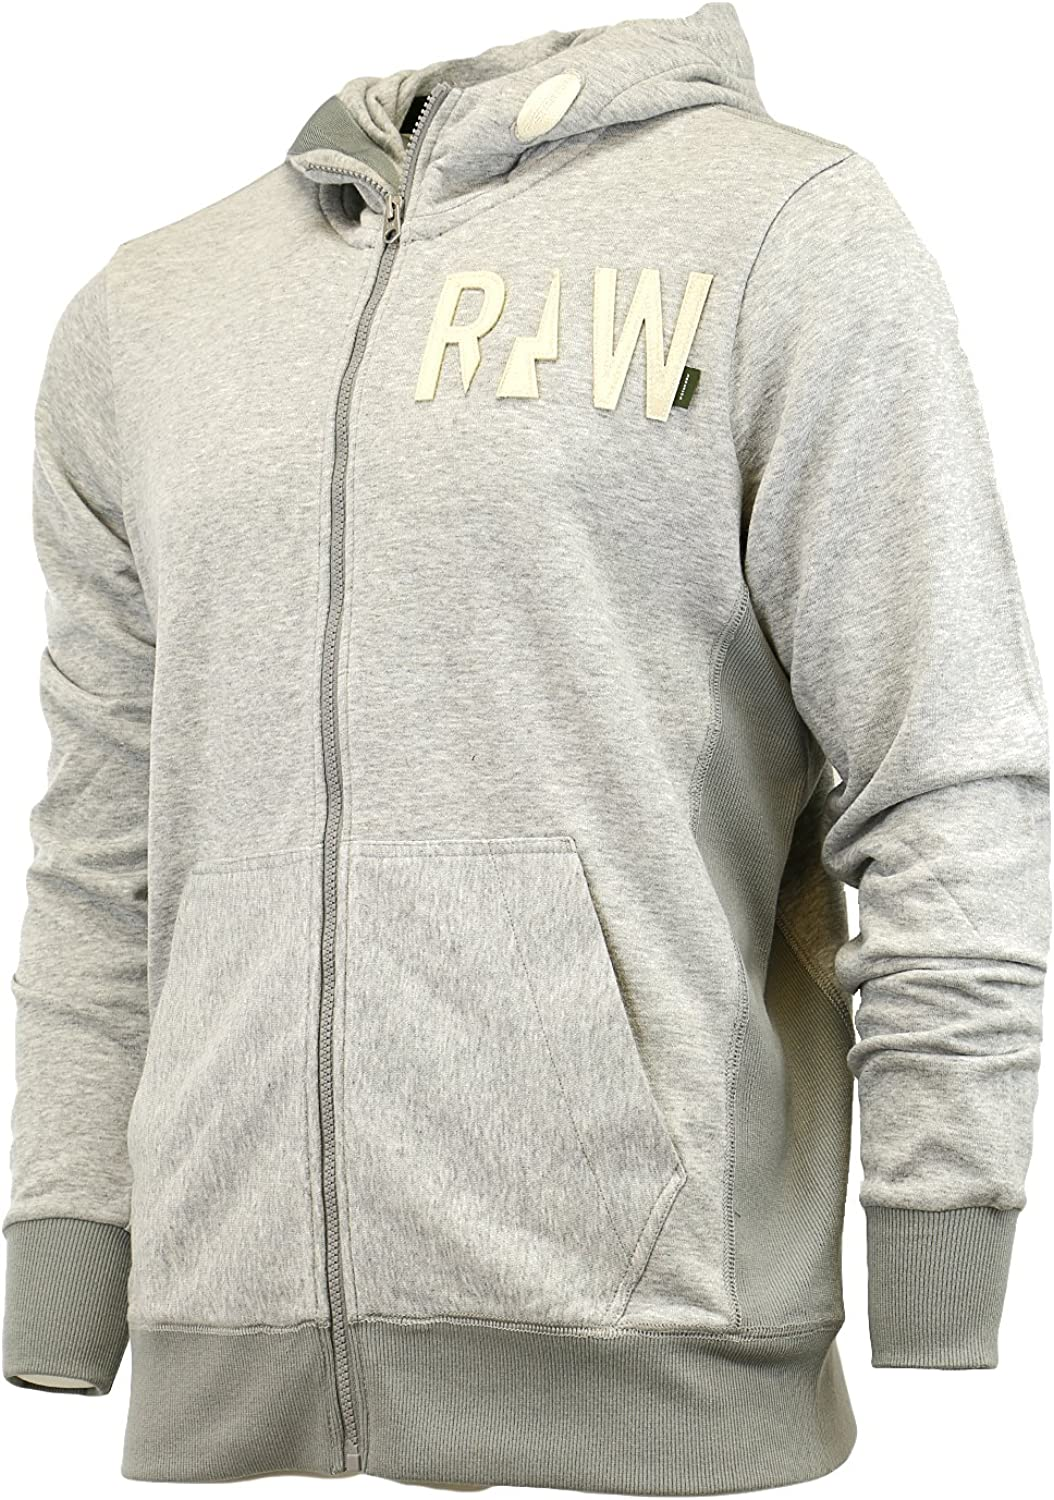 G-Star Raw Mens Netrol Hooded Vest Sw Long Sleeve Sweatshirts